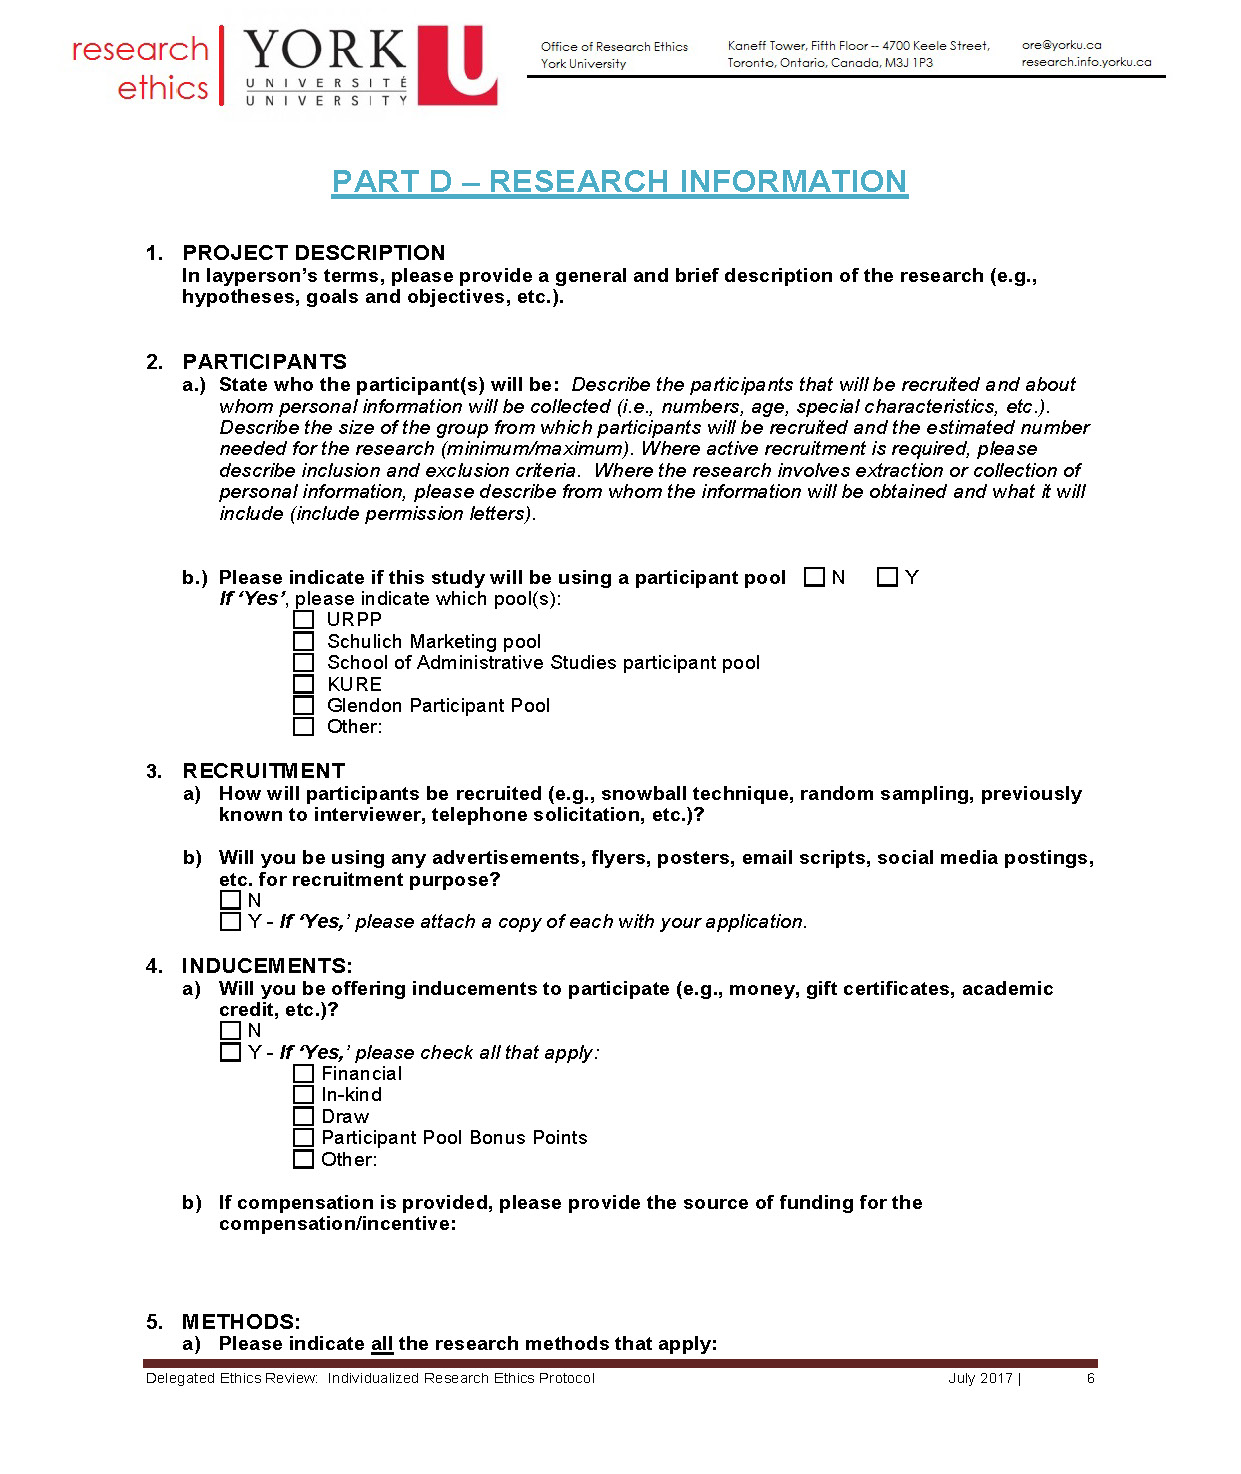 full-size image of the individualized protocol from research ethics page 6